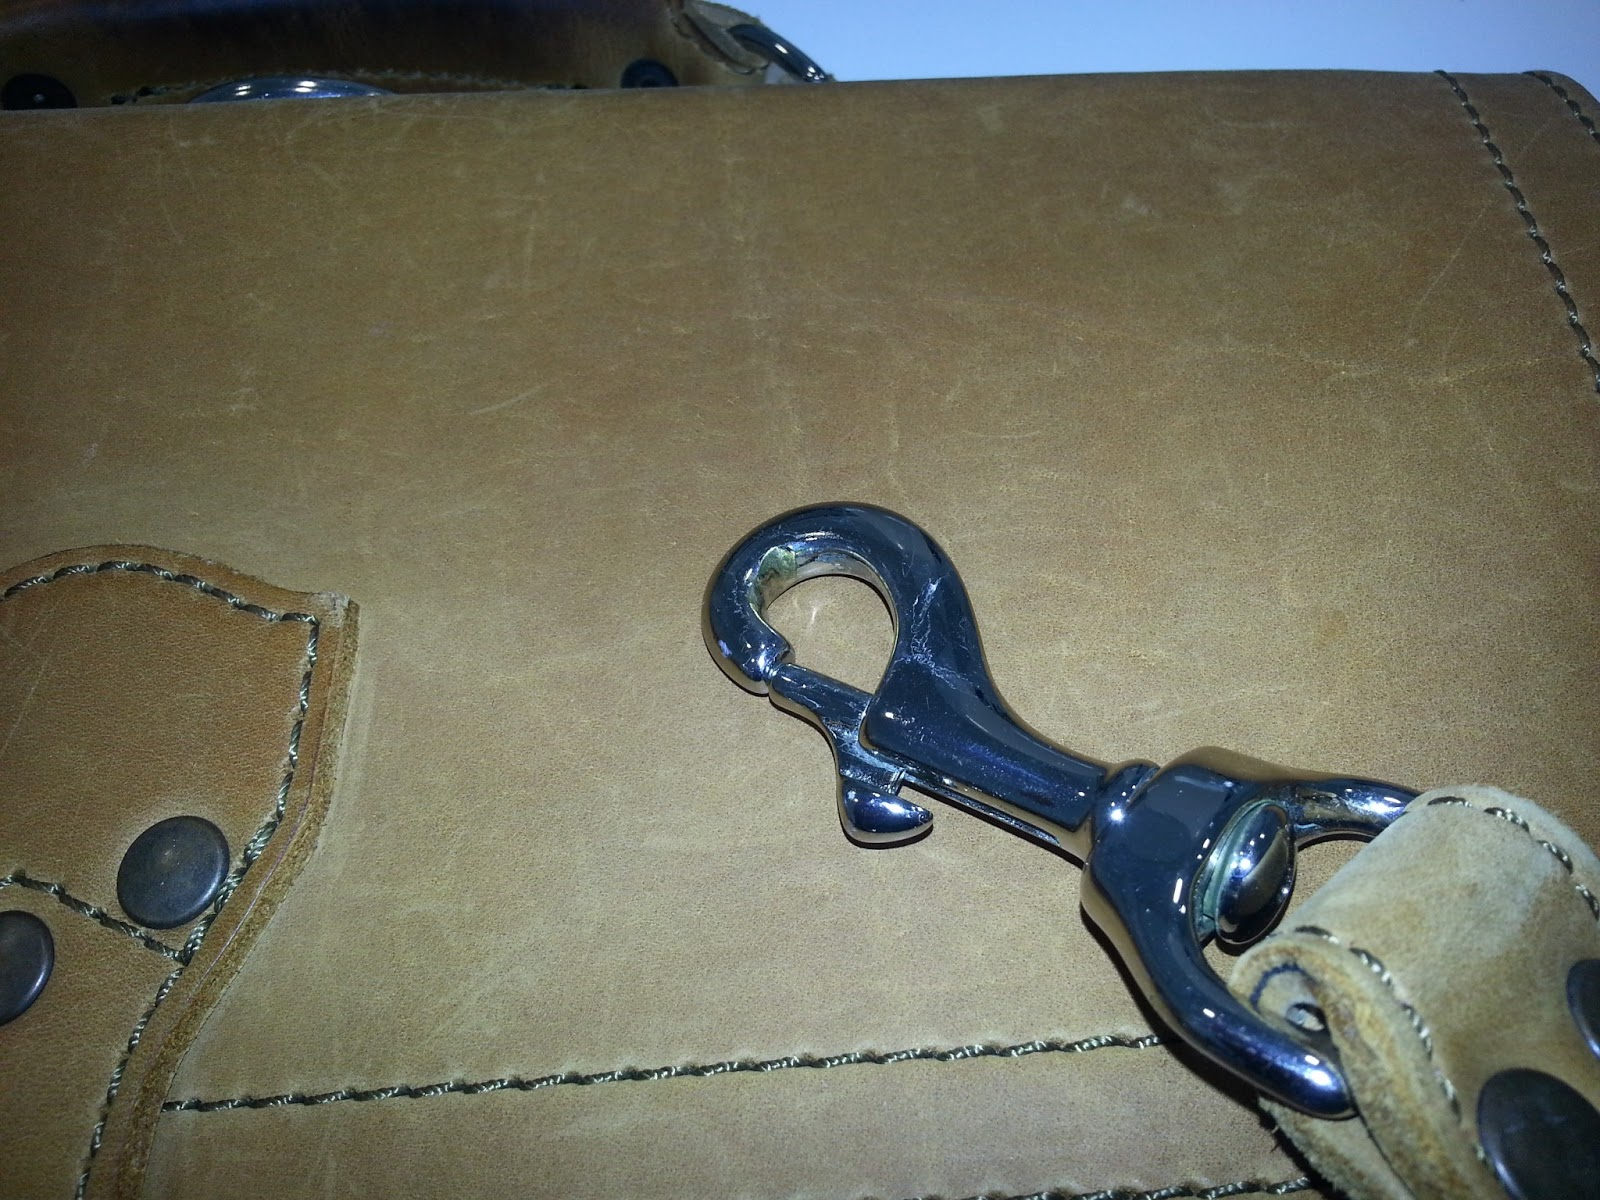 Saddleback Leather Thin Briefcase Review